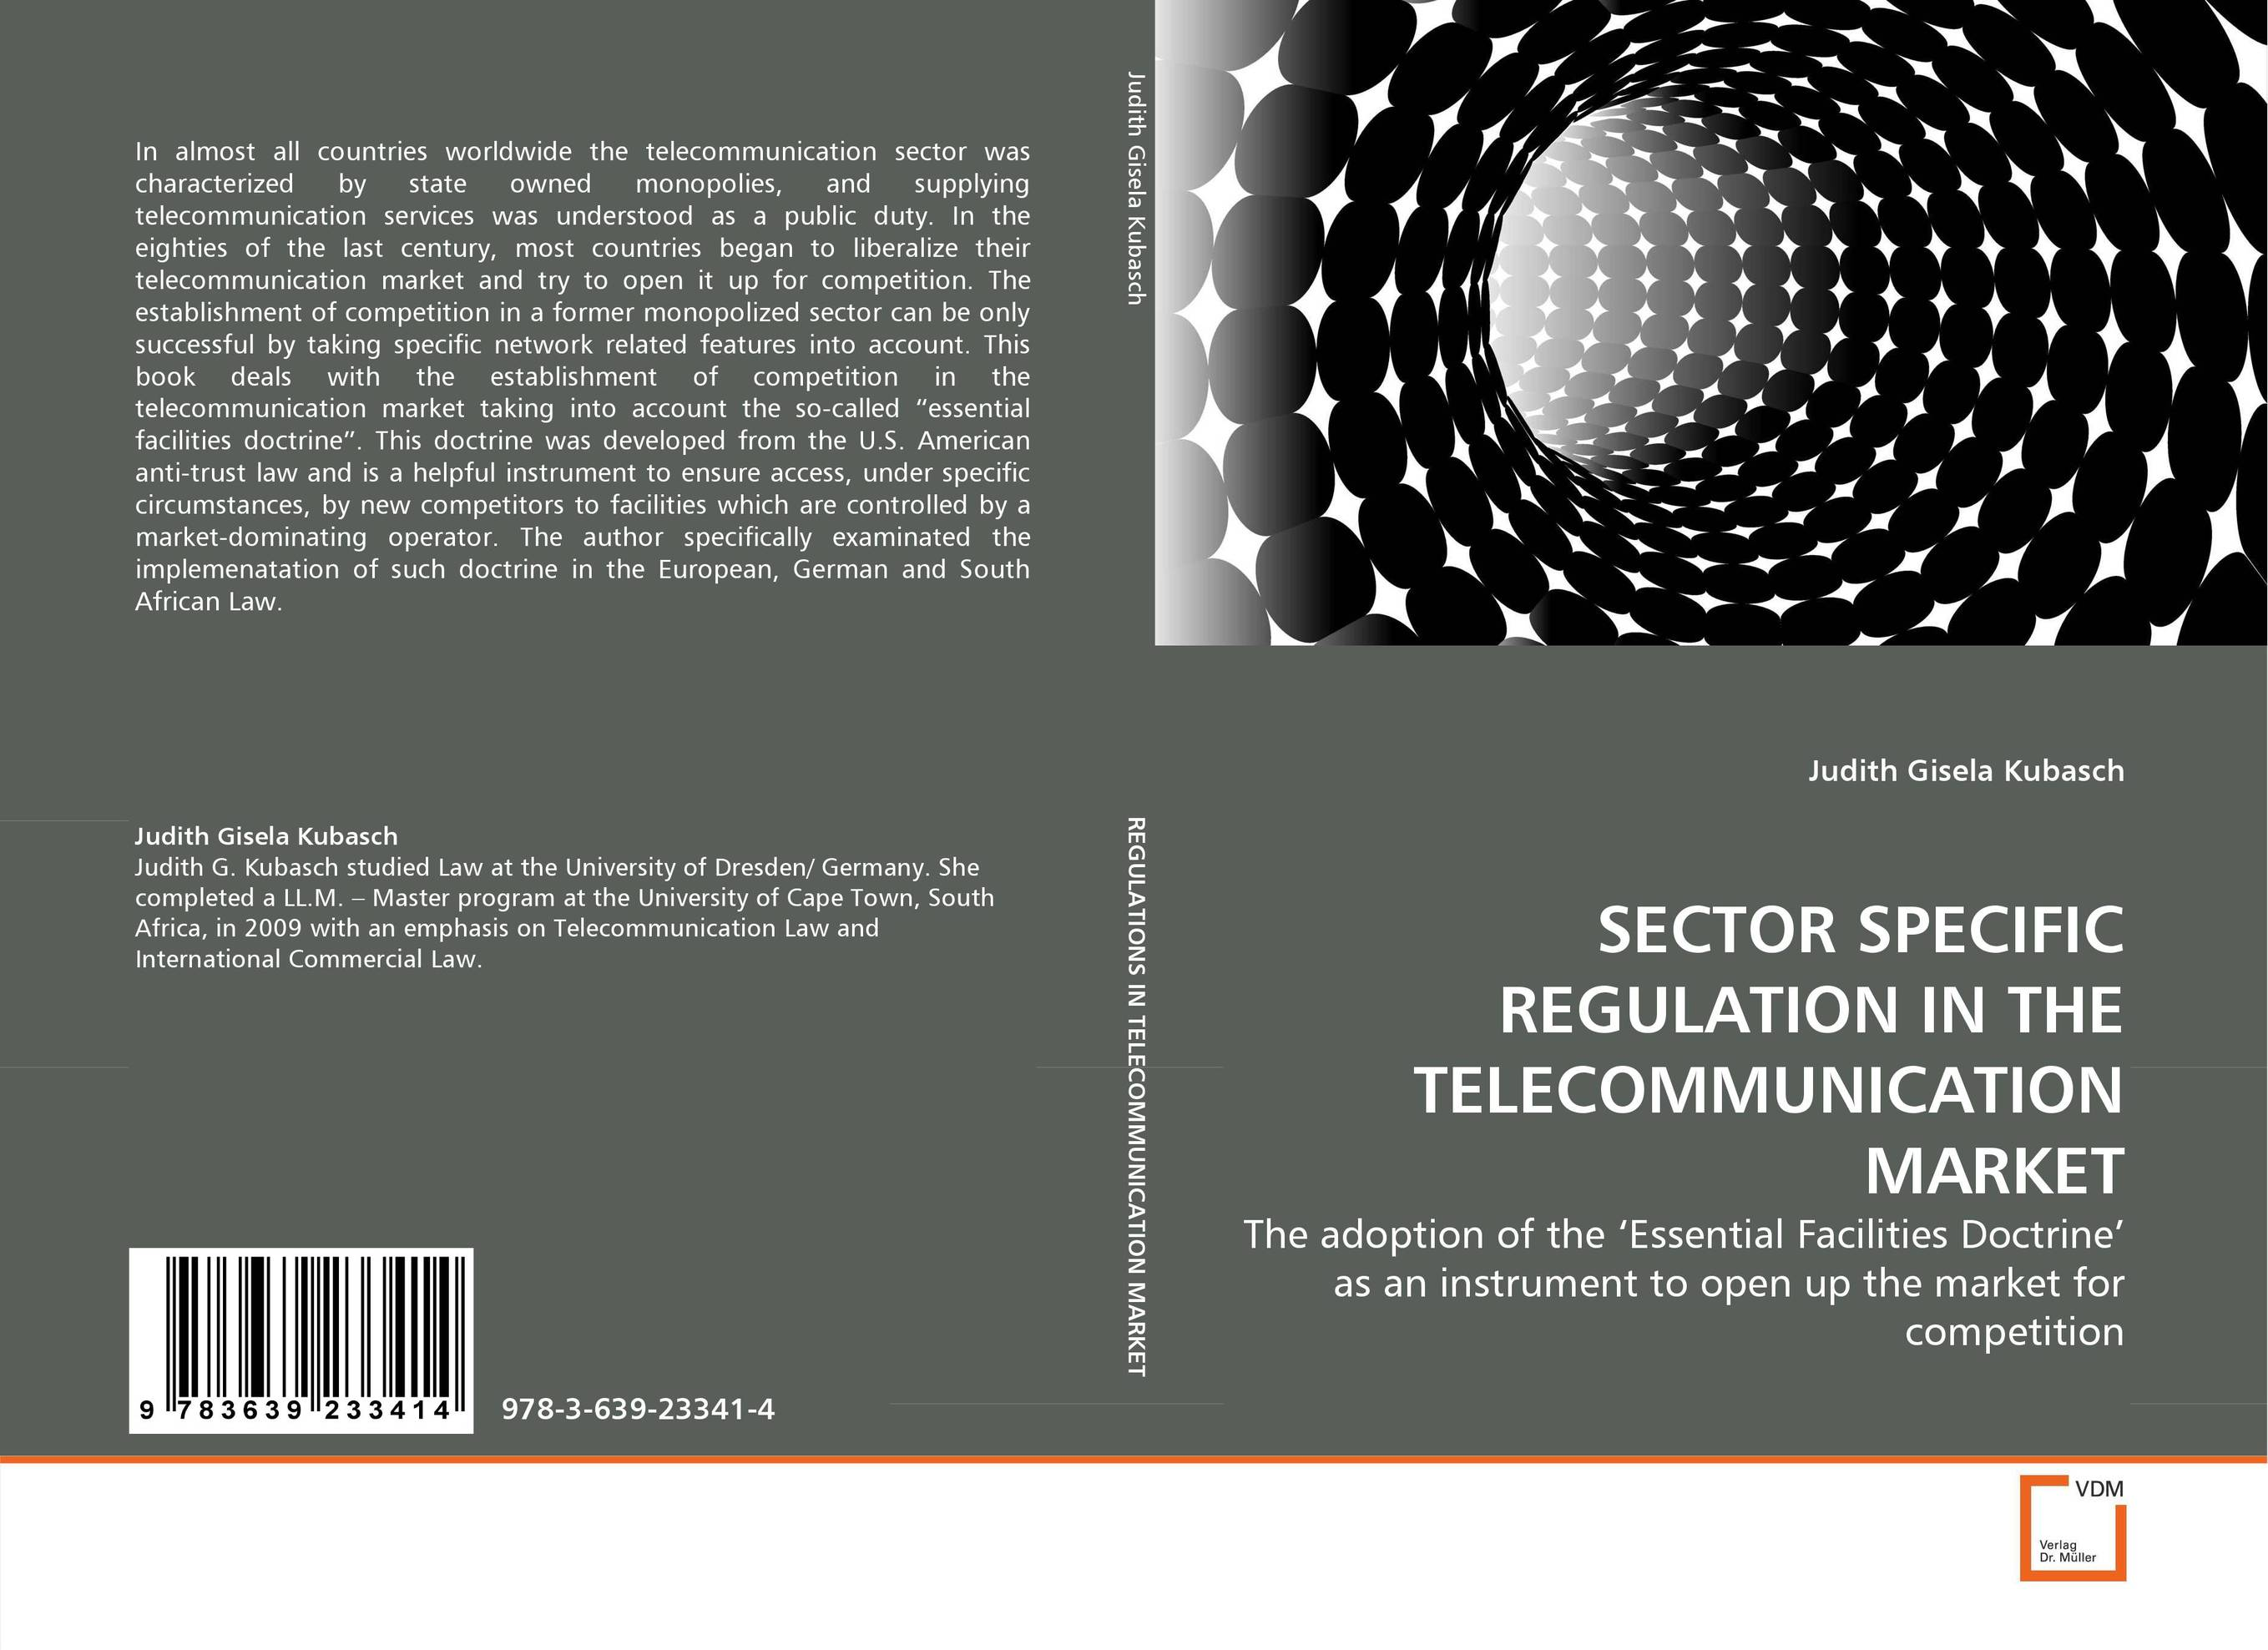 SECTOR SPECIFIC REGULATION IN THE TELECOMMUNICATION MARKET